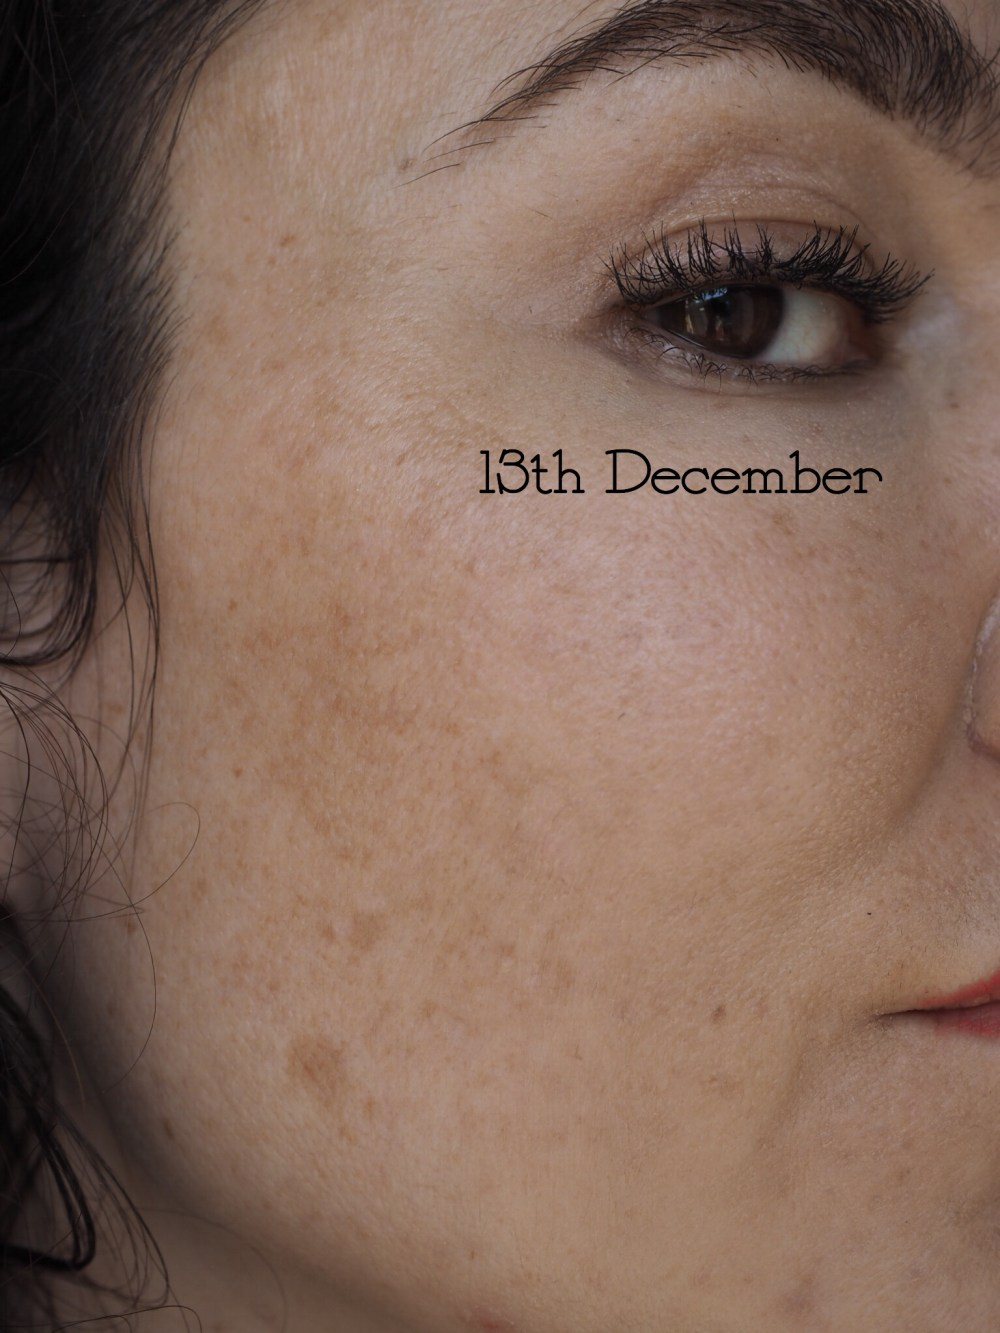 Re Pigment by NIOD- The After 3 Months Picture- freckles have faded but definitely still present